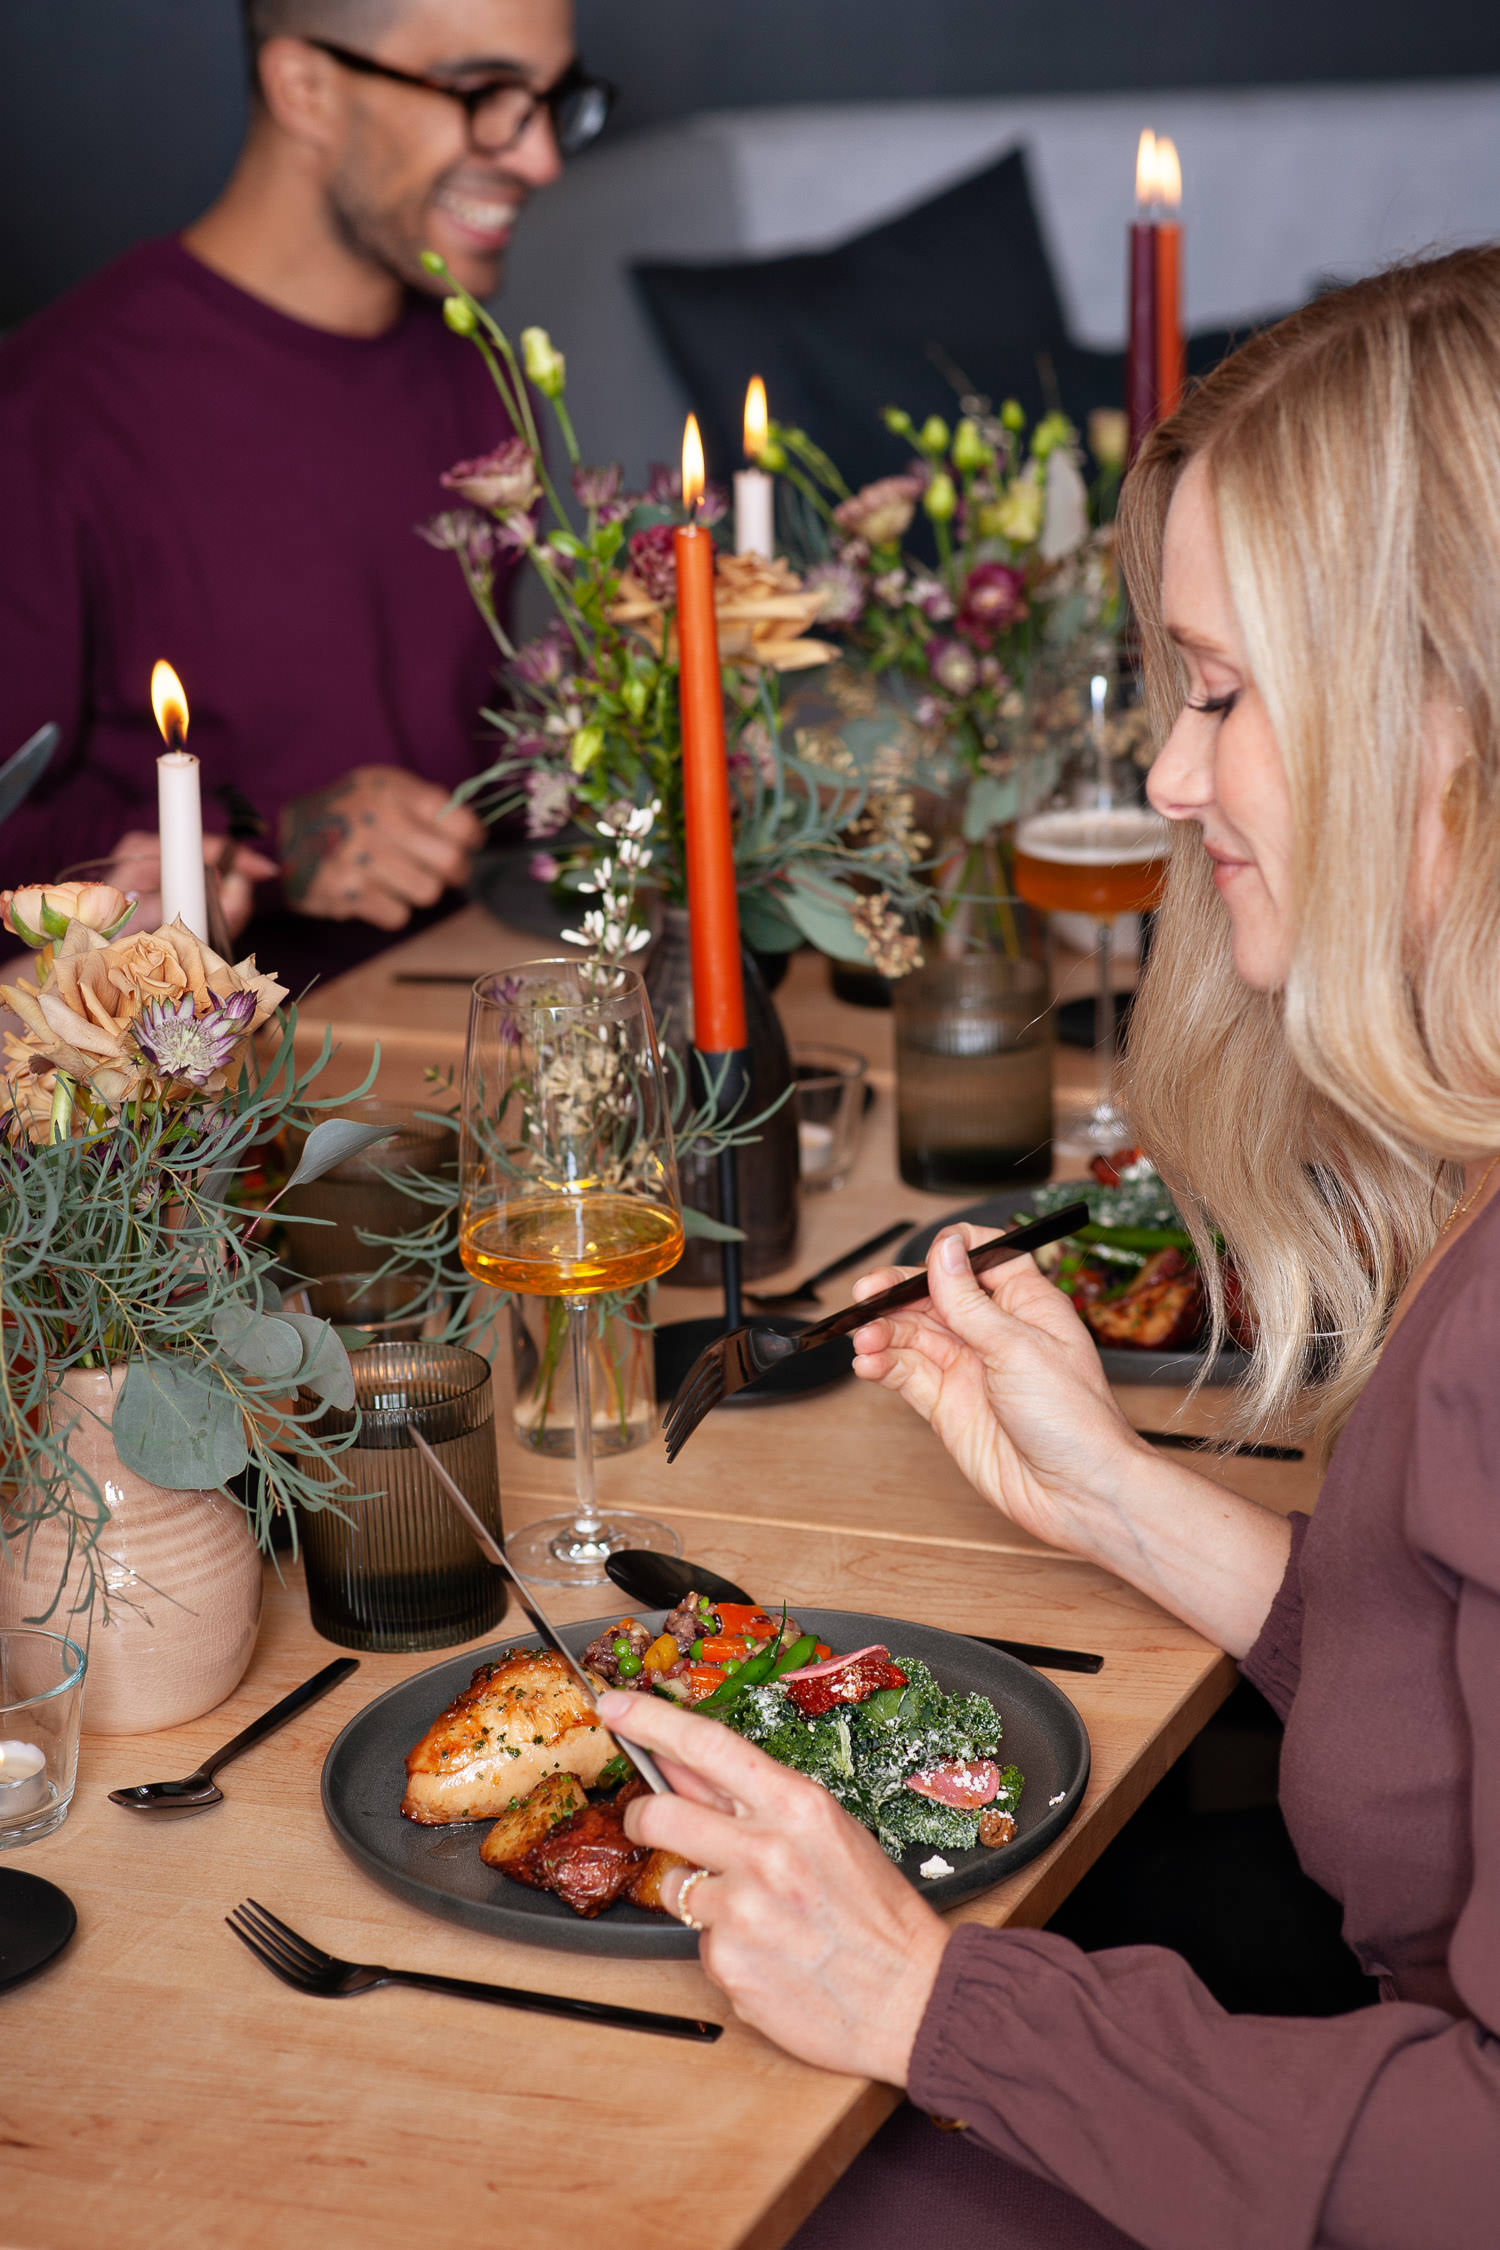 Wedding meal by Empire Provisions at Annex Ale Project captured by Tara Whittaker Photography